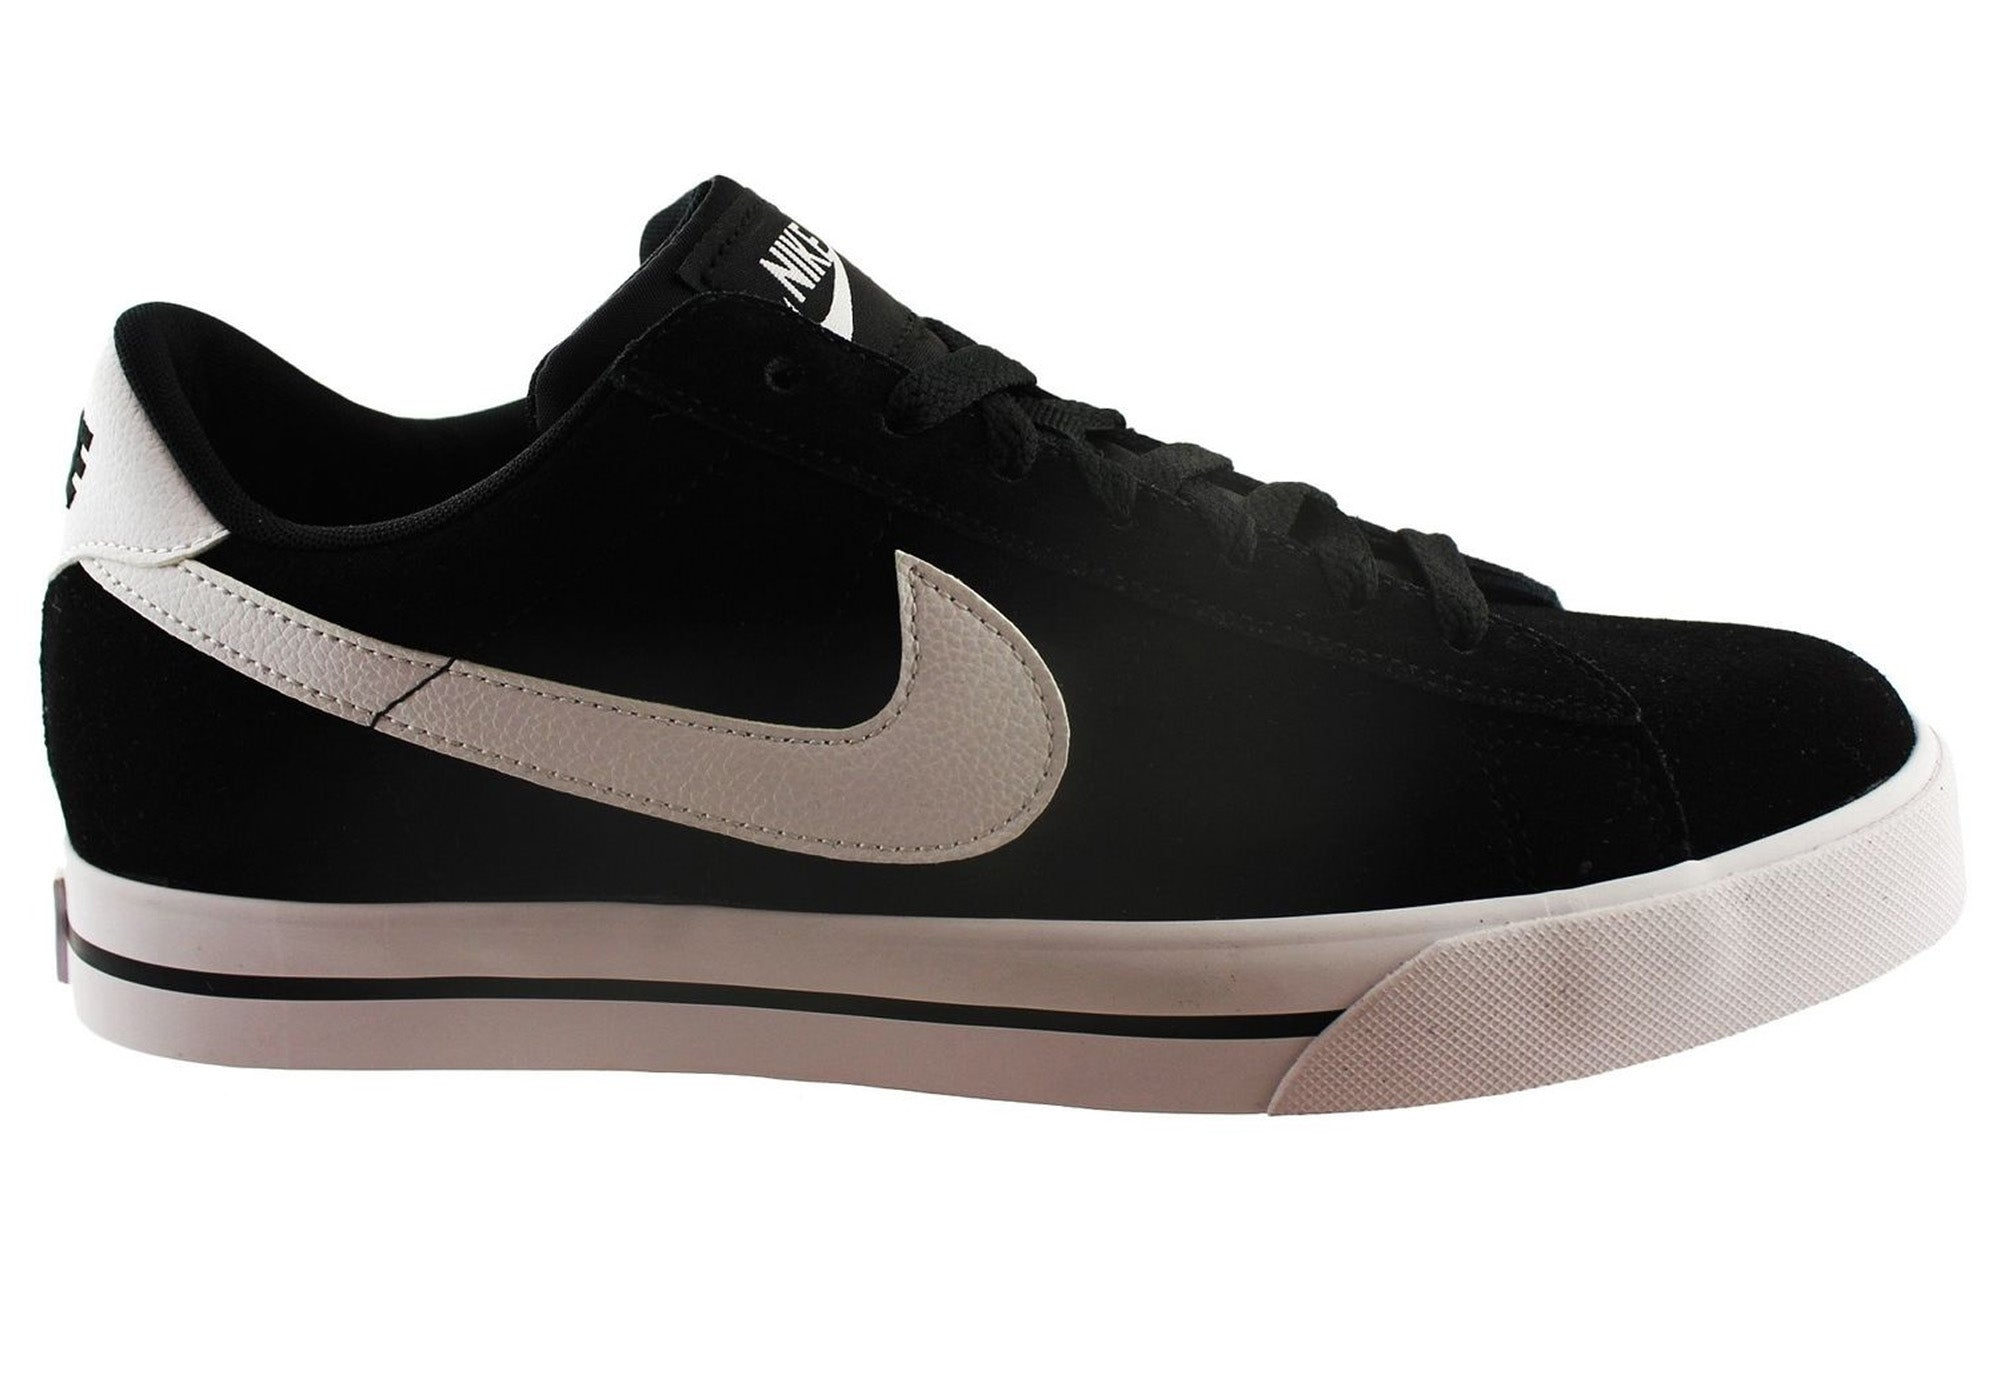 premium selection 1839a cb846 Home Nike Mens Sweet Classic Leather Lace Up Casual Shoes. Black White